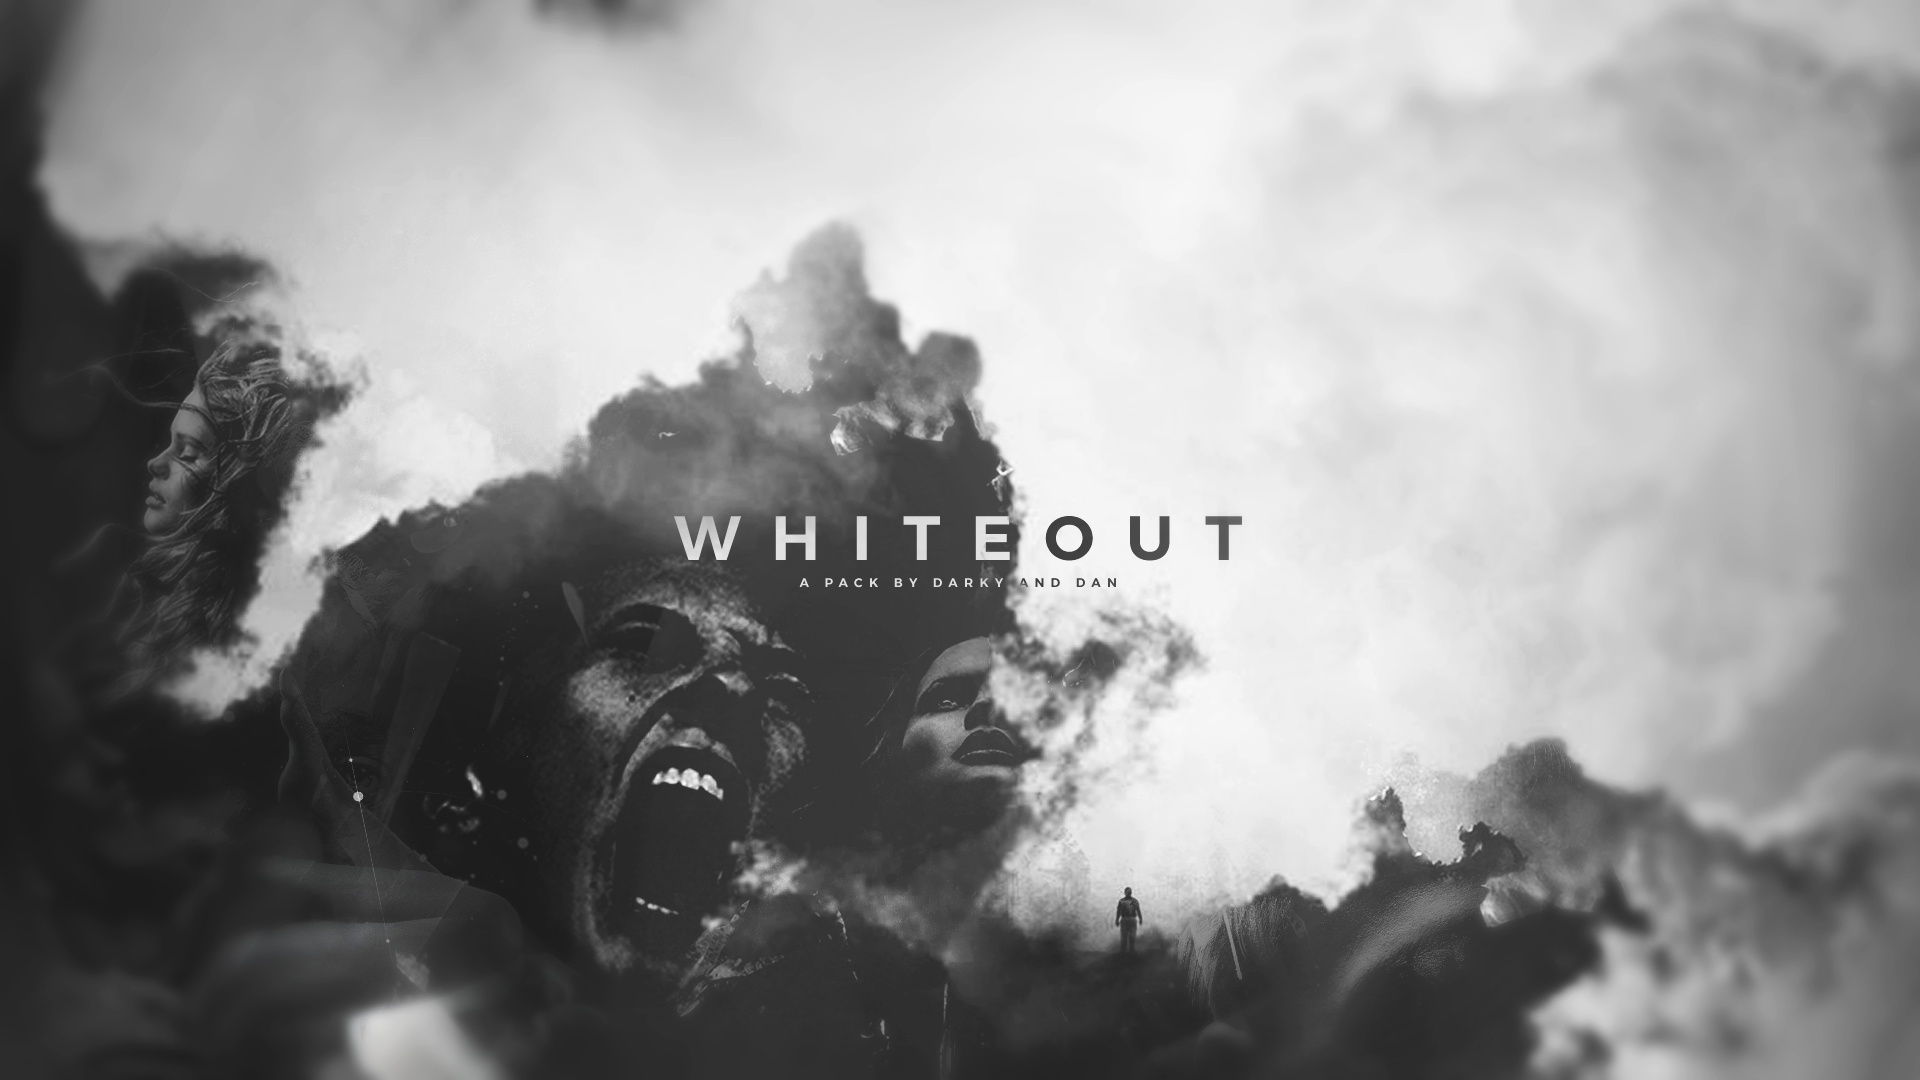 Whiteout by Darky & Dan